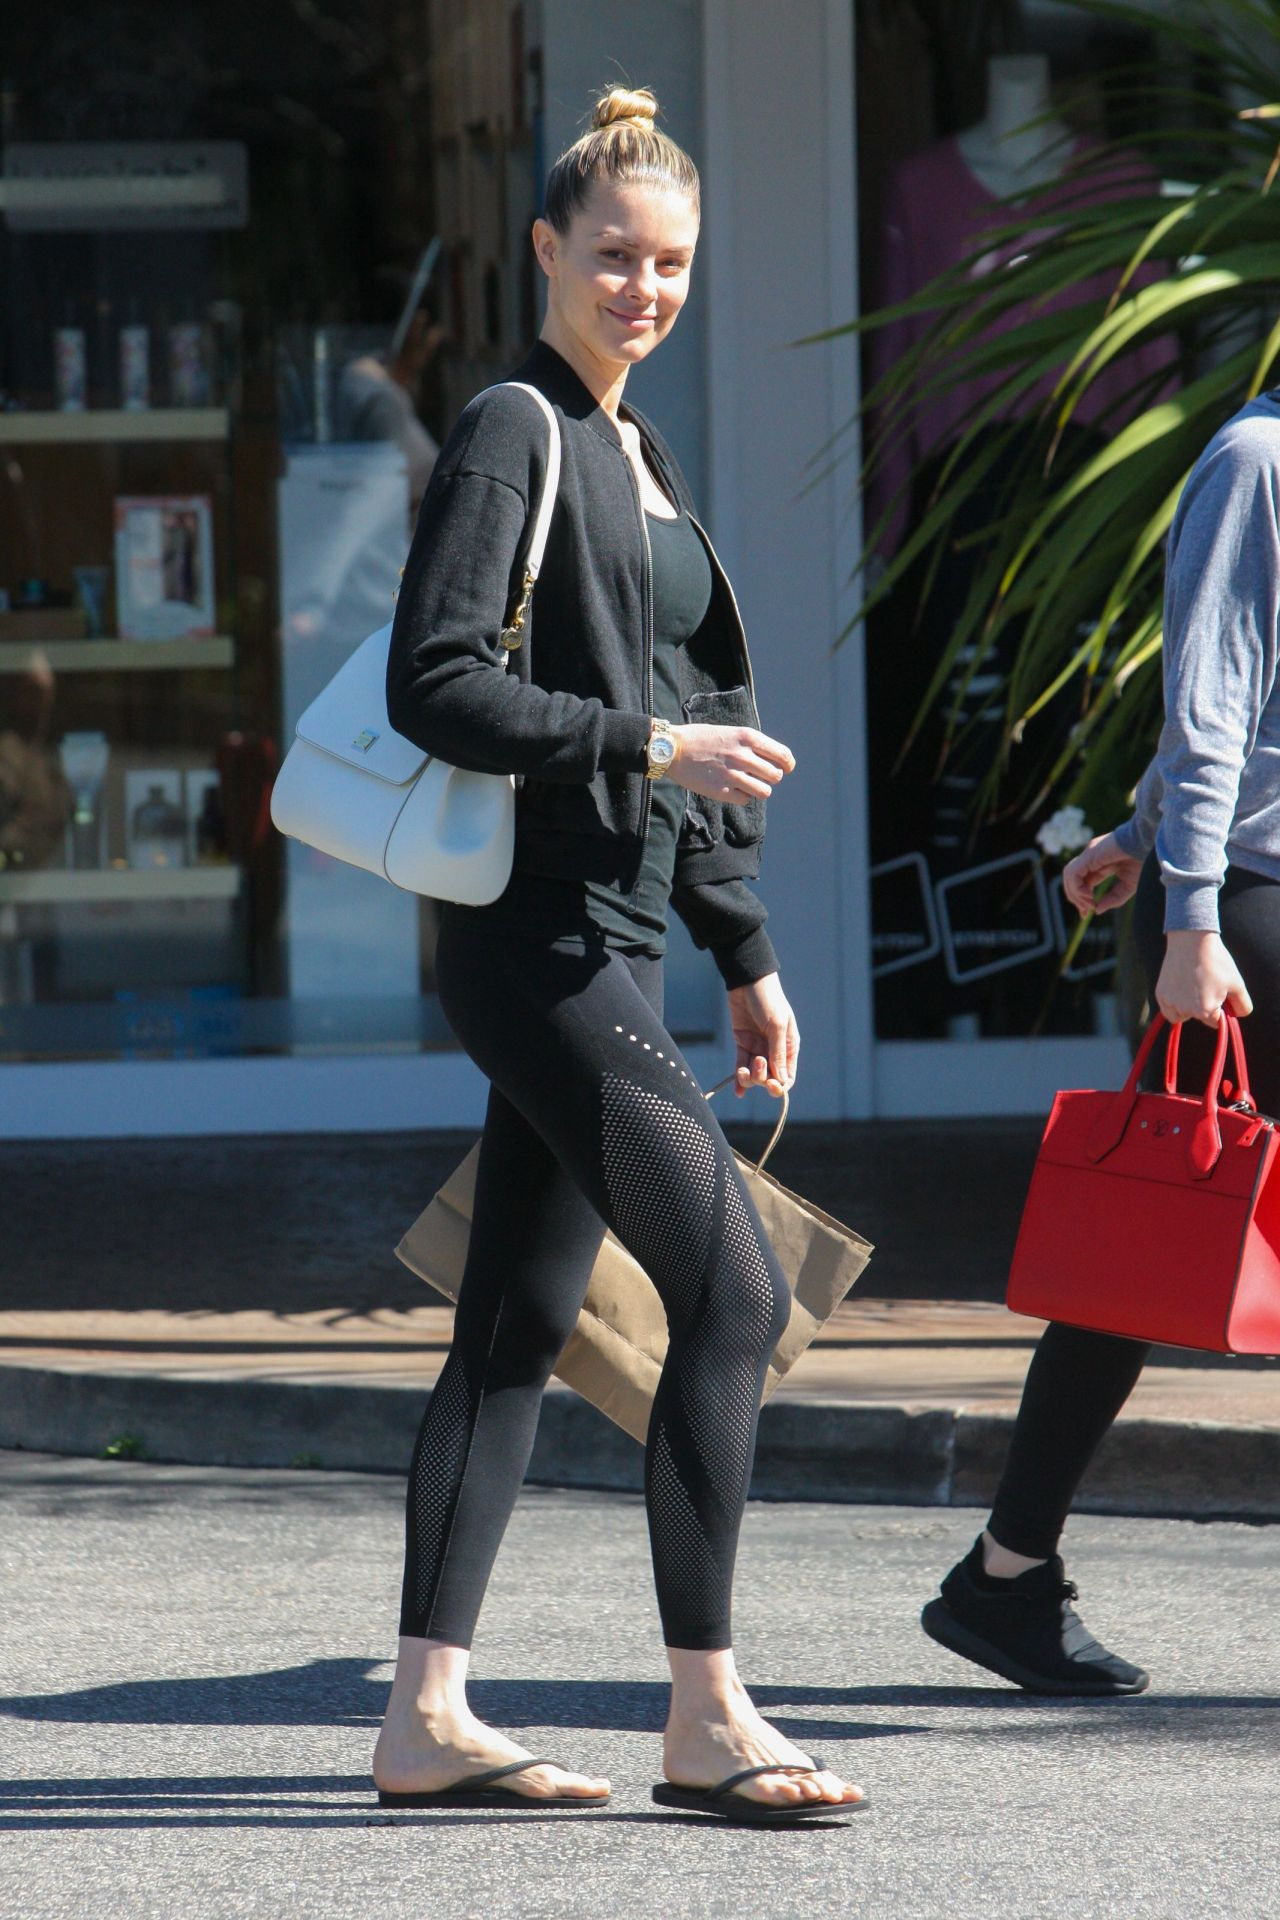 Paige butcher in spandex beverly hills